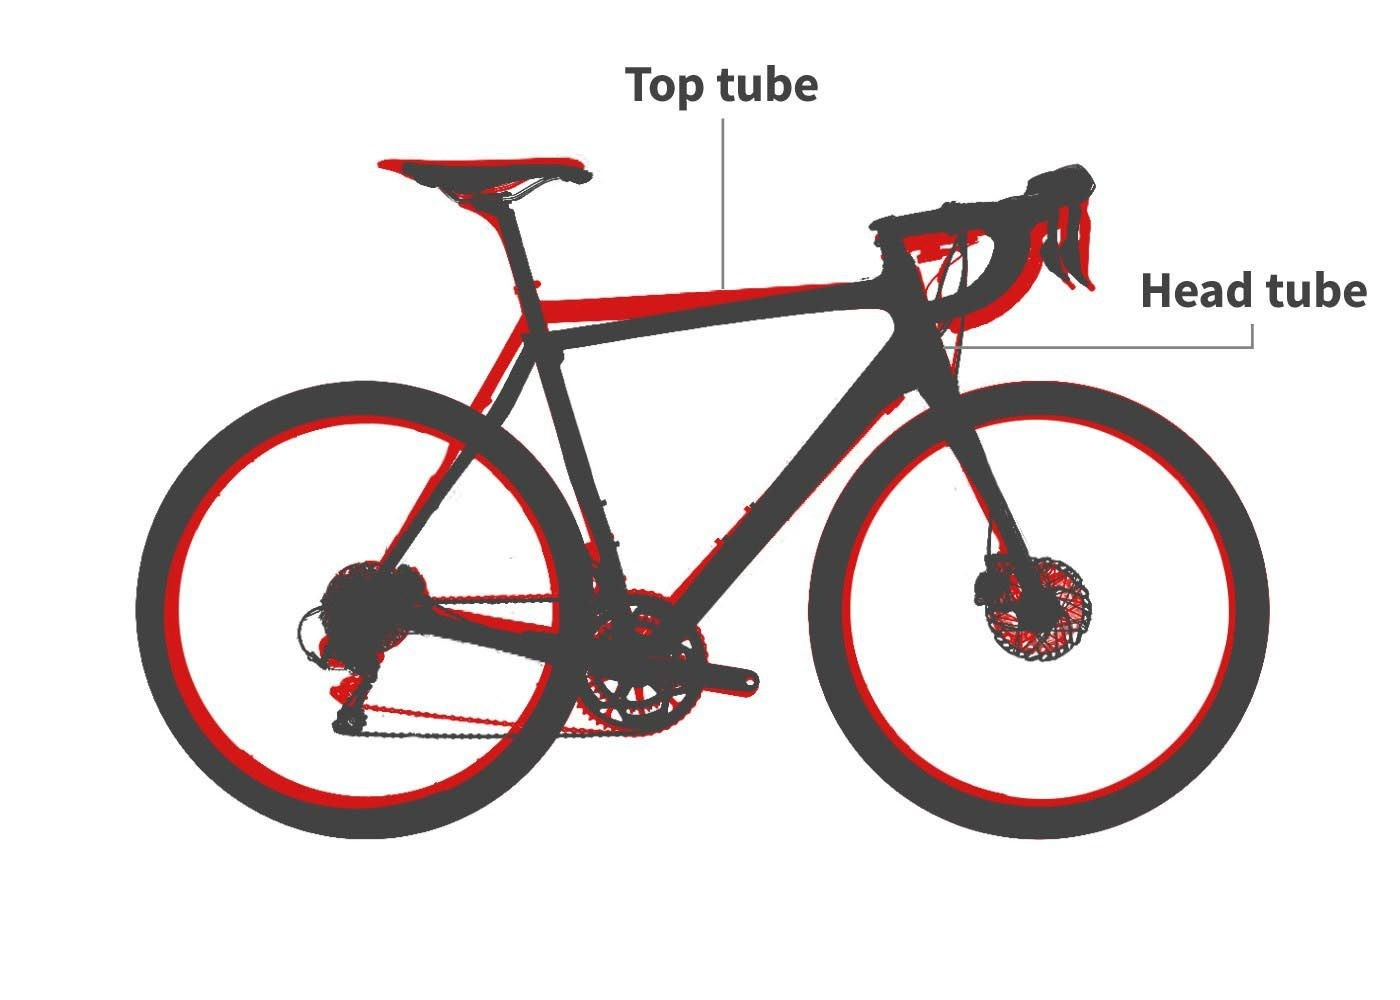 Comparison of racing and endurance road bikes